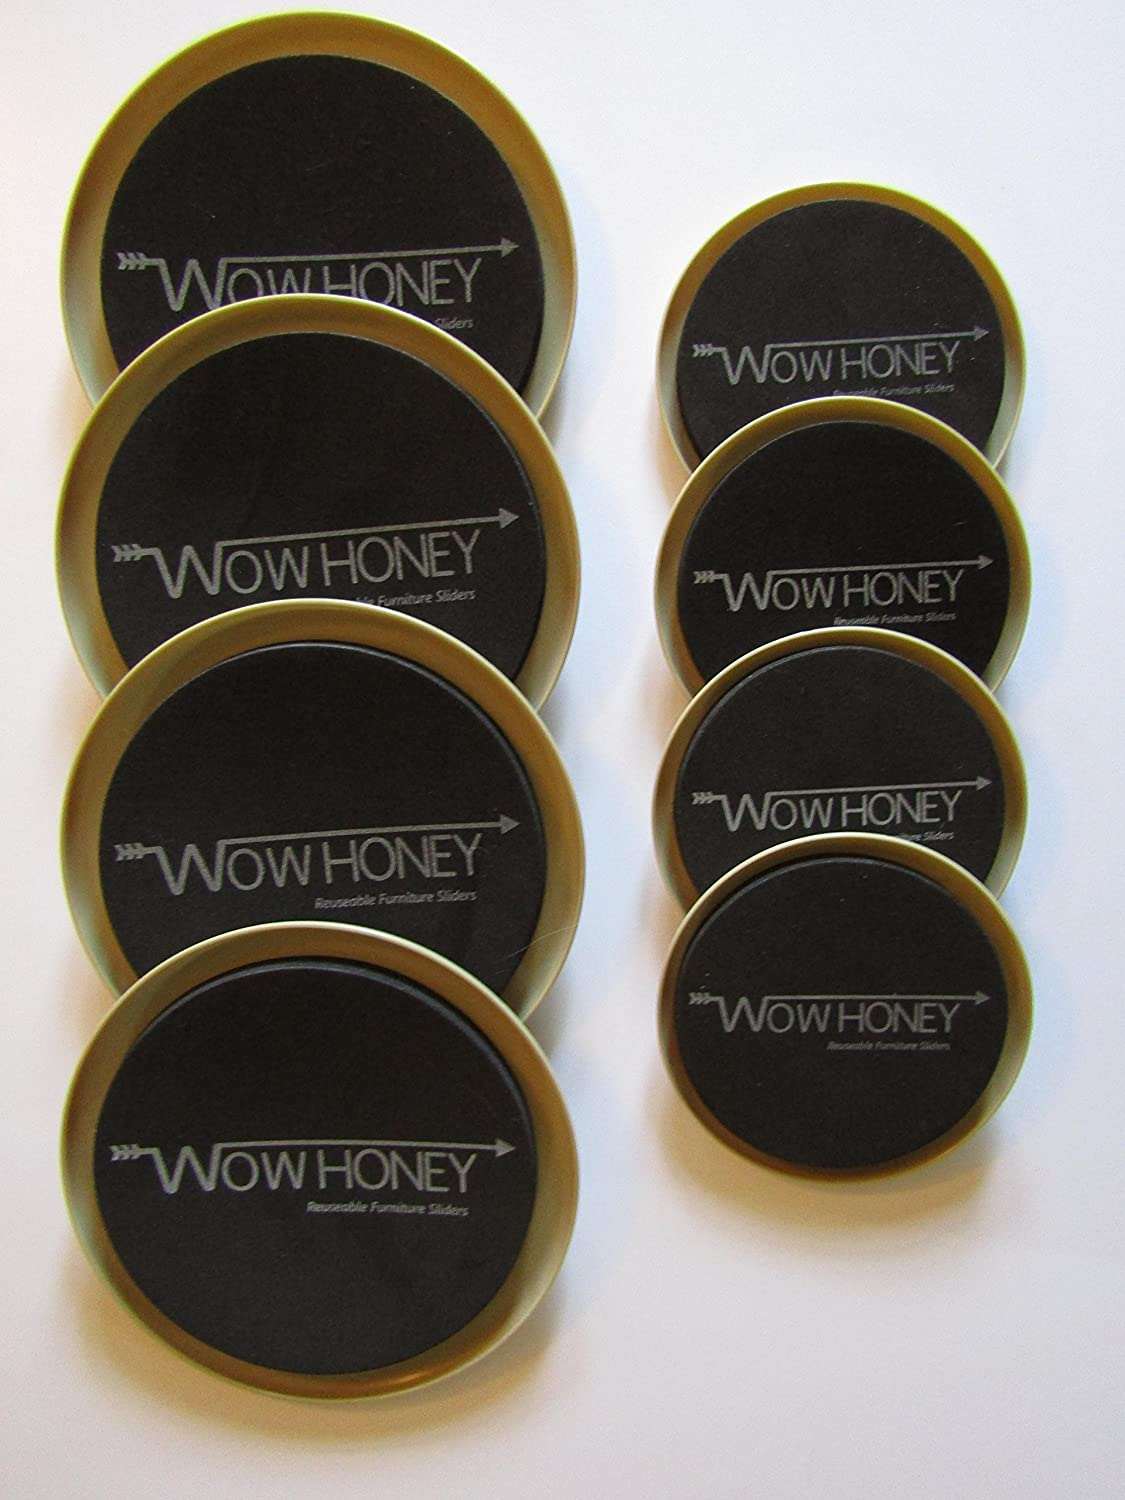 Furnitures Sliders Large Round for Carpet,Patio 8 Pack. Wow Honey Moving Furniture With Ease,on Most Surfaces